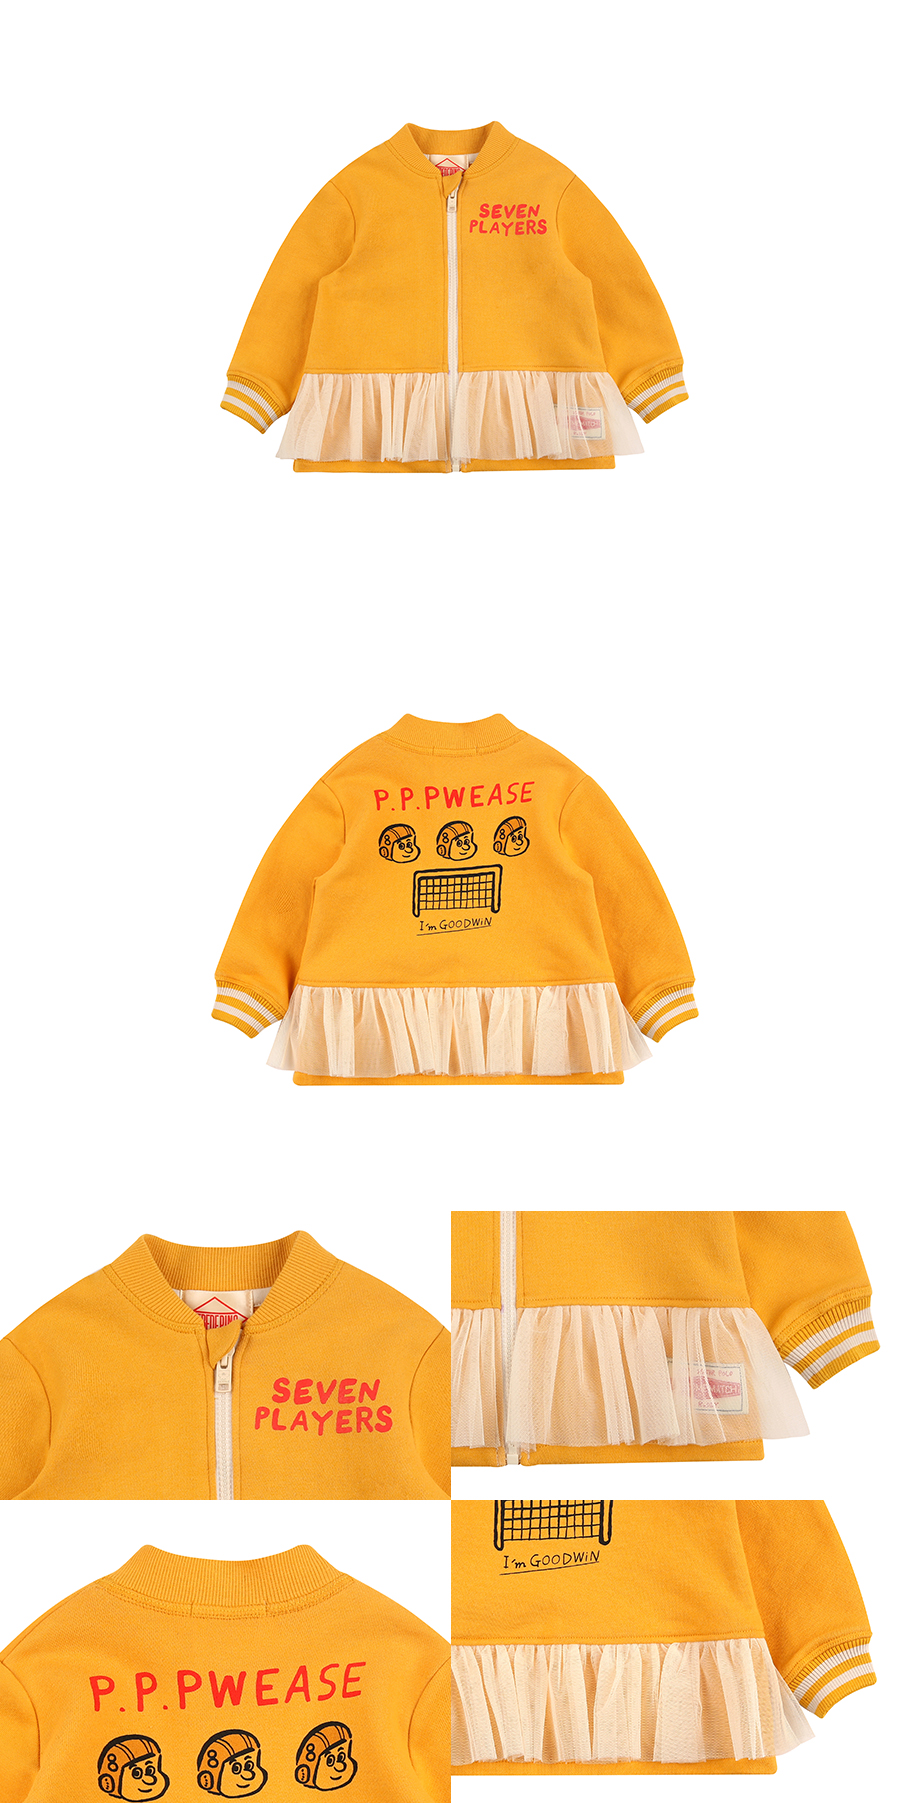 Seven players baby tutu zip up jacket 상세 이미지